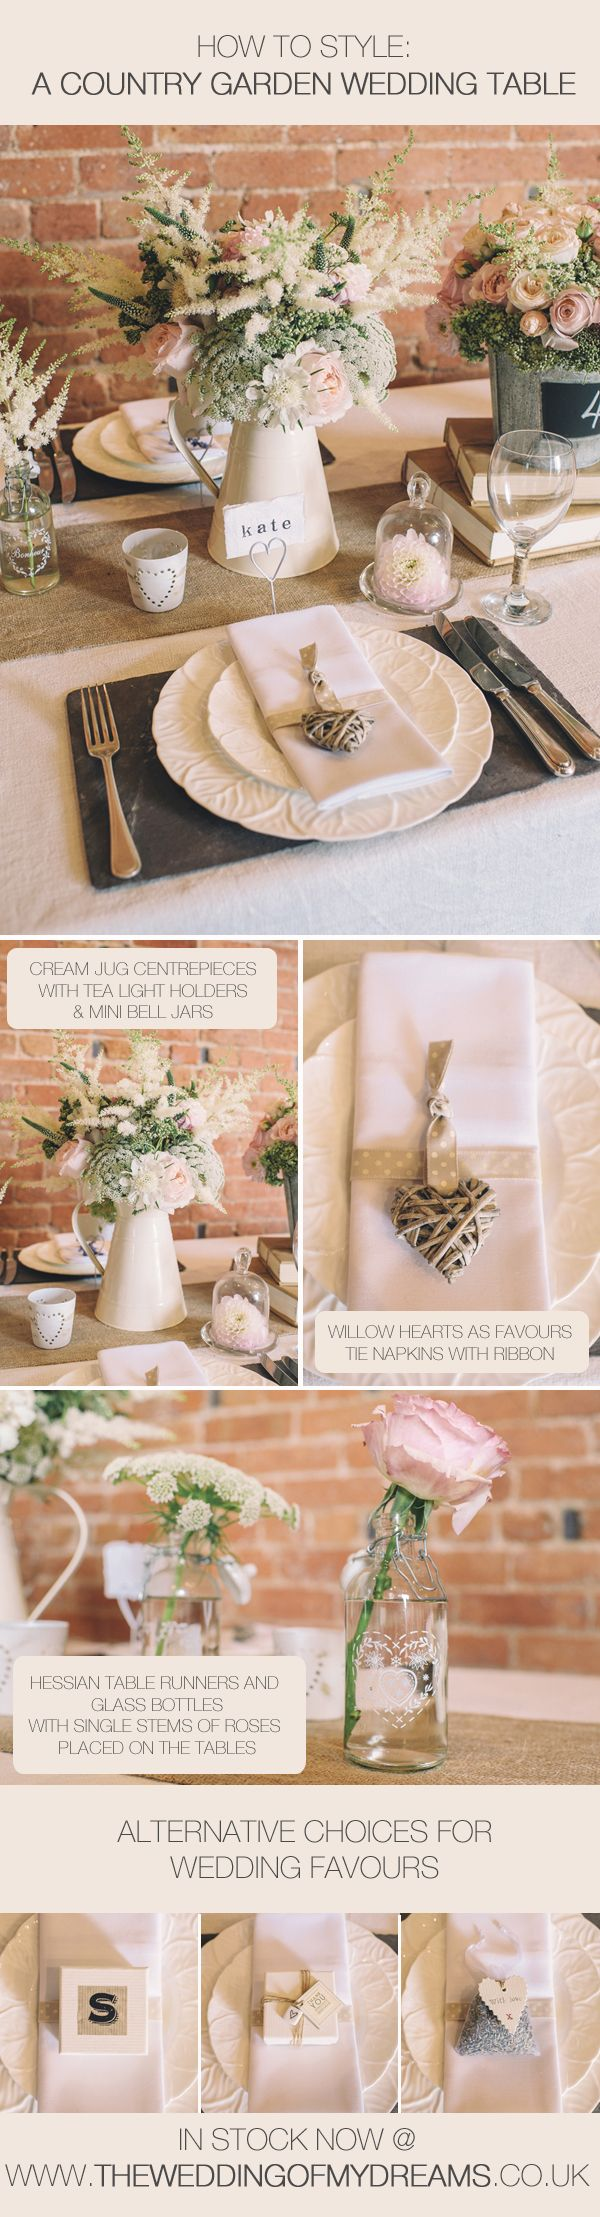 How To Style Country Garden Wedding Tables with Cream Jug Centrepieces, Hessian Table Runners, Wooden Heart Favours. Allavailable from www.theweddingofmydreams.co.uk #wedding @Matt Valk Chuah Wedding of my Dreams